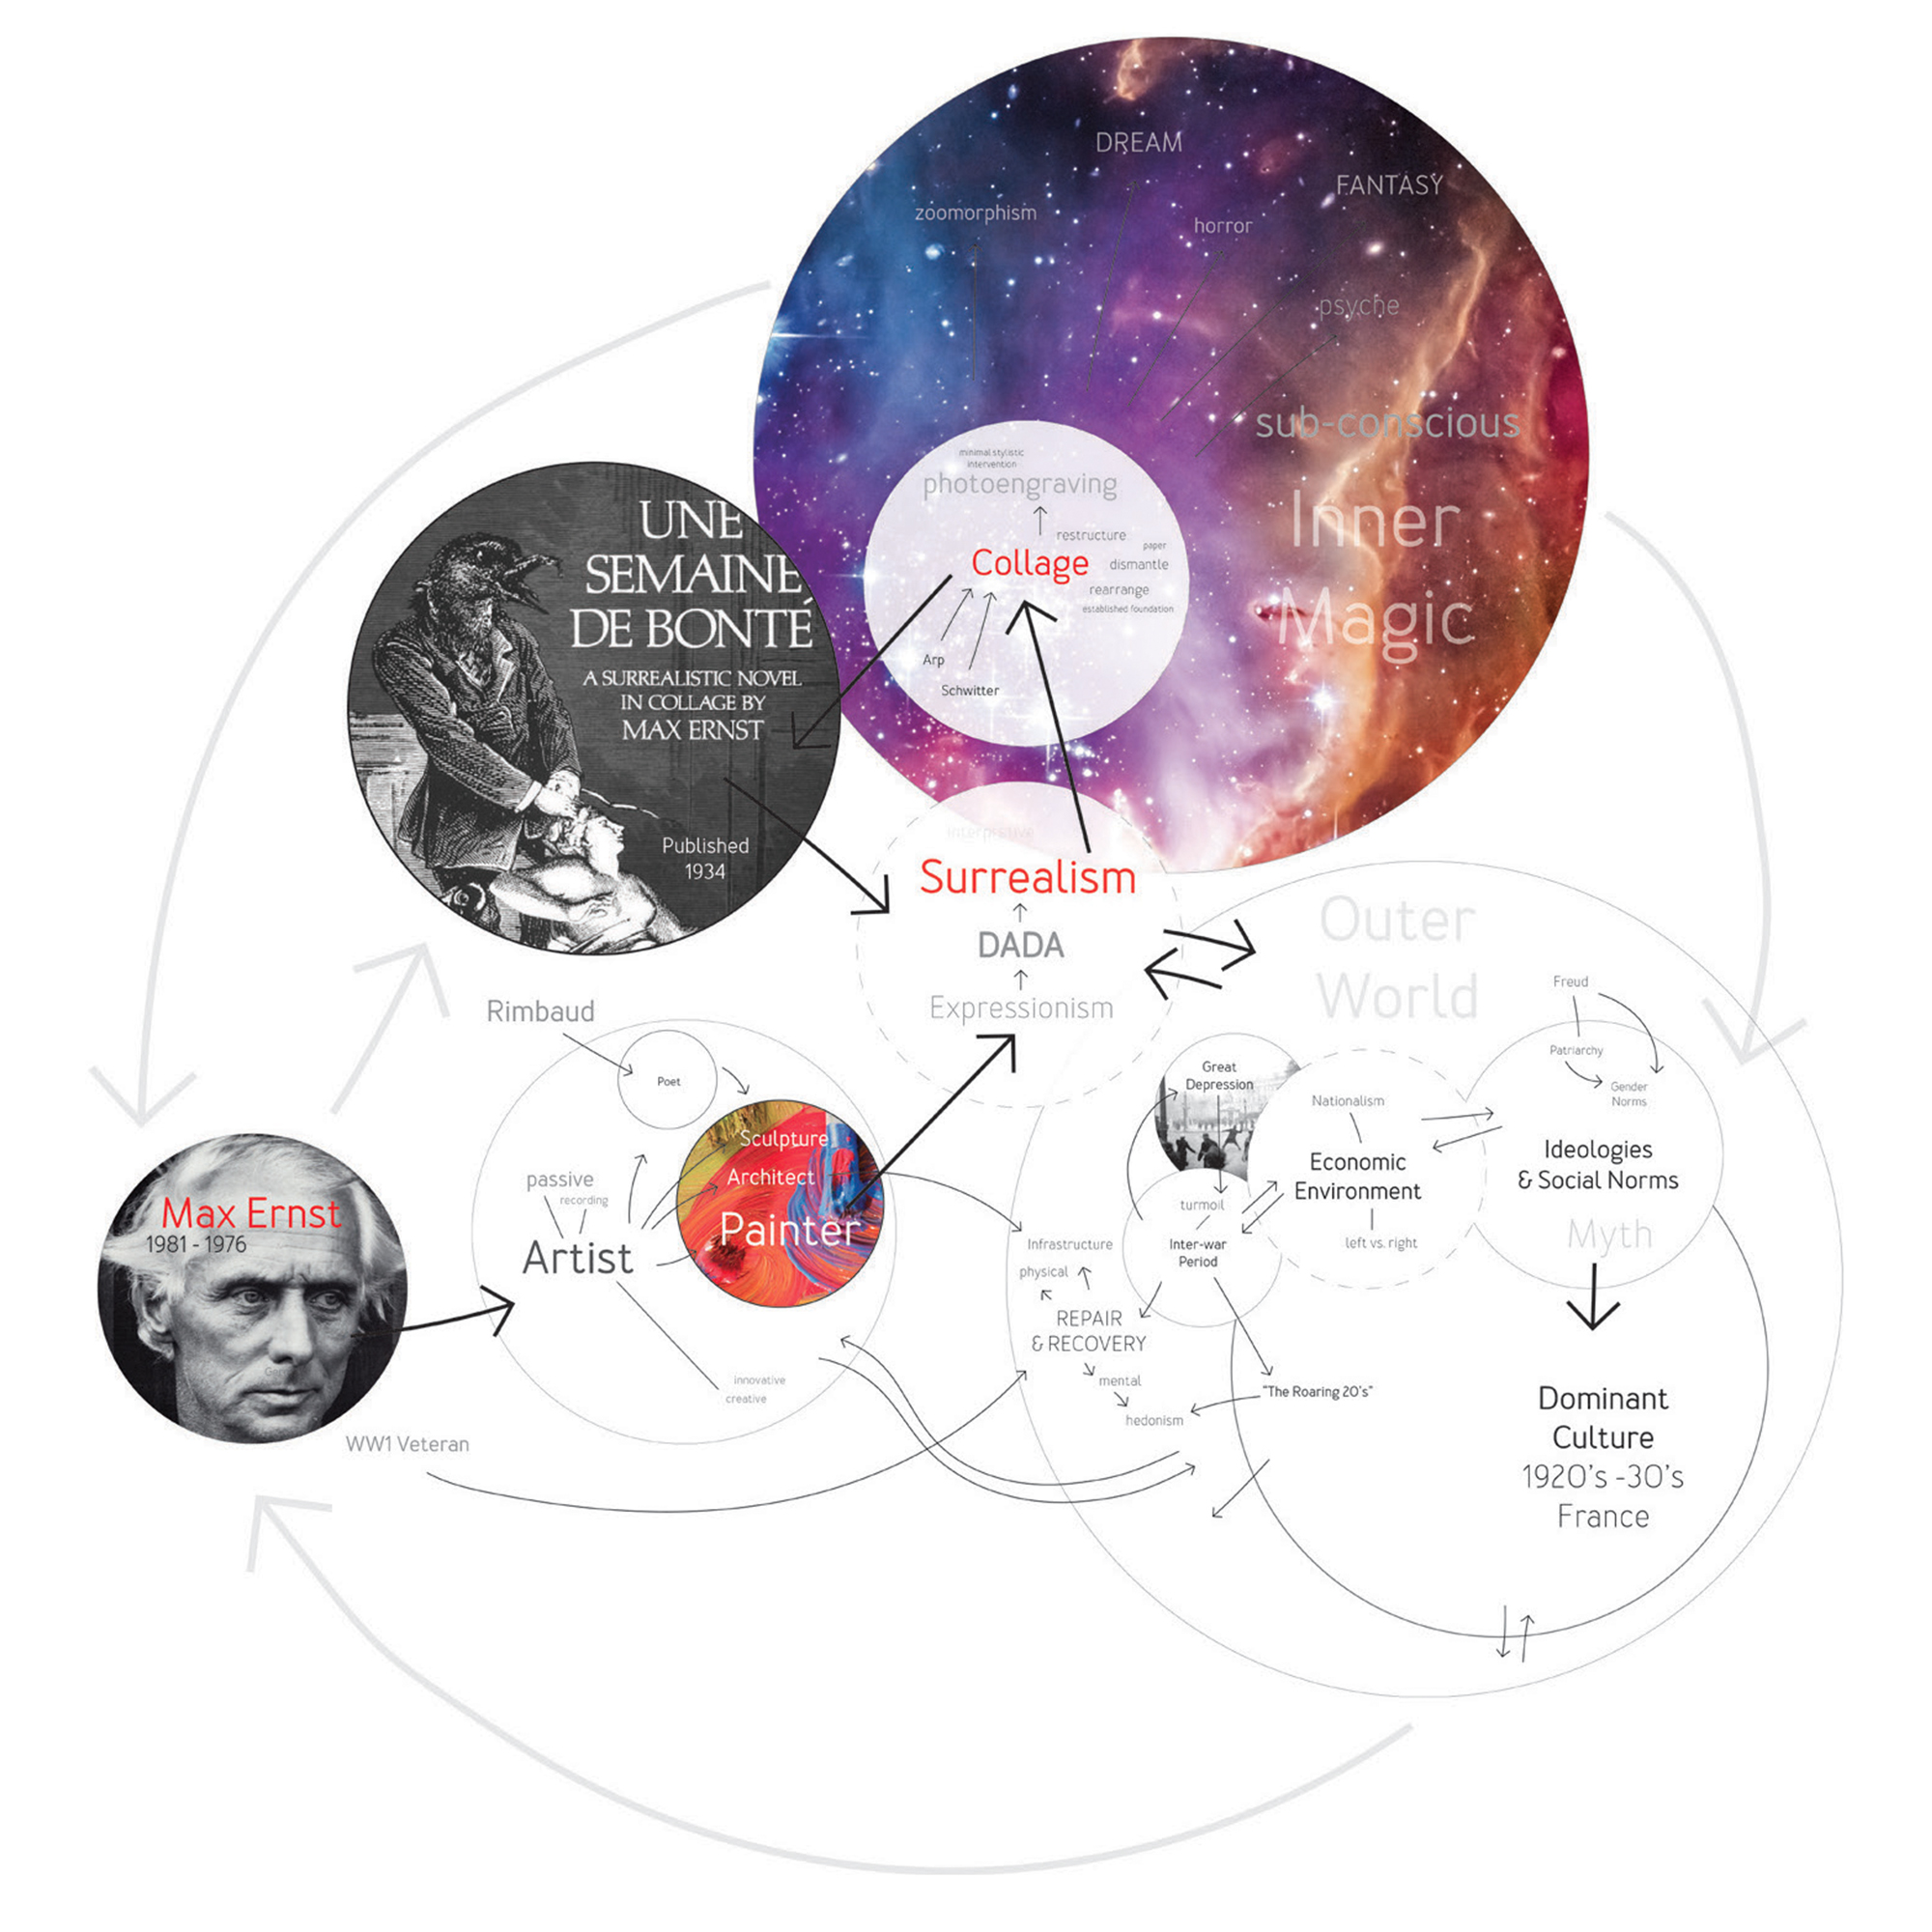 One of many mind maps, this one's on Max Ernst, 2014.